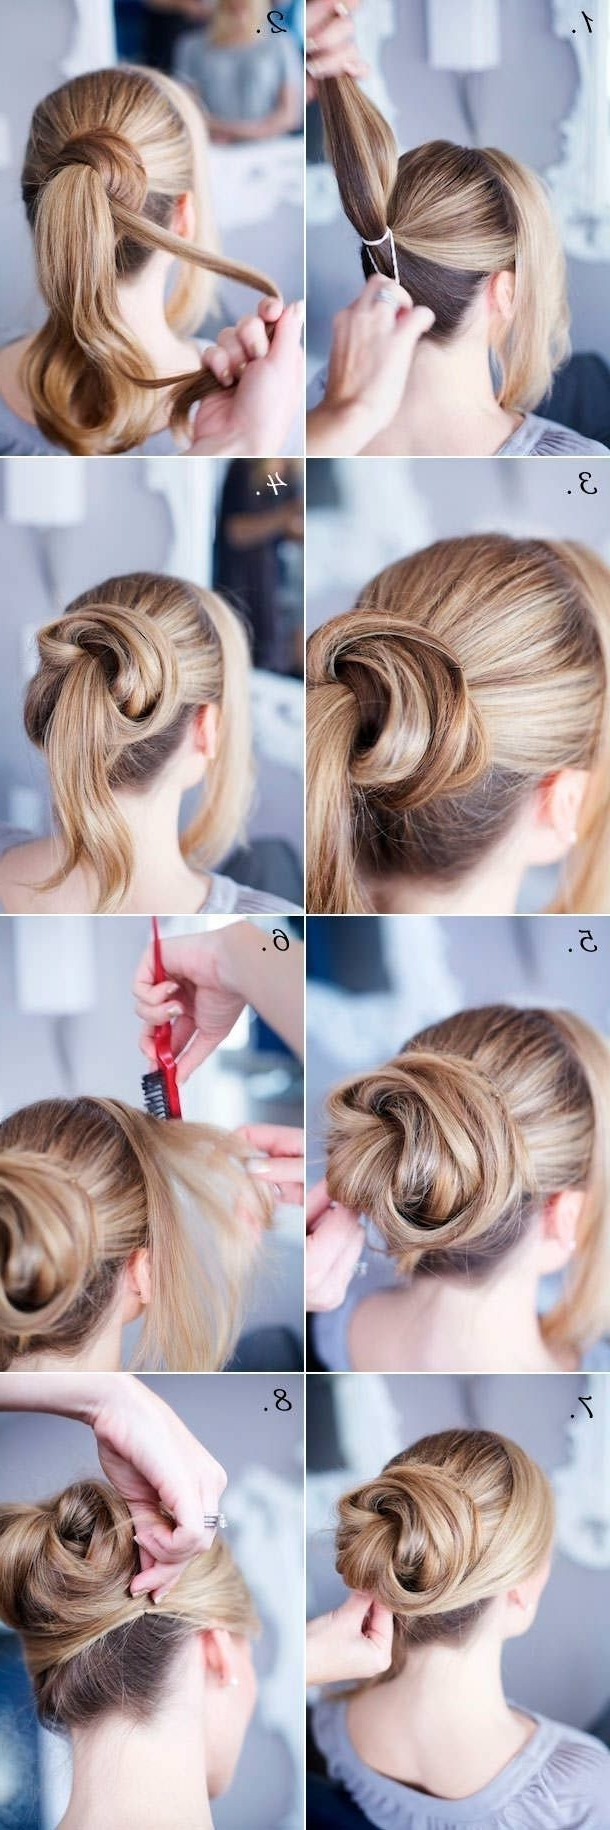 14 Easy Stepstep Updo Hairstyles Tutorials – Pretty Designs With Cute Updos For Long Hair (View 4 of 15)